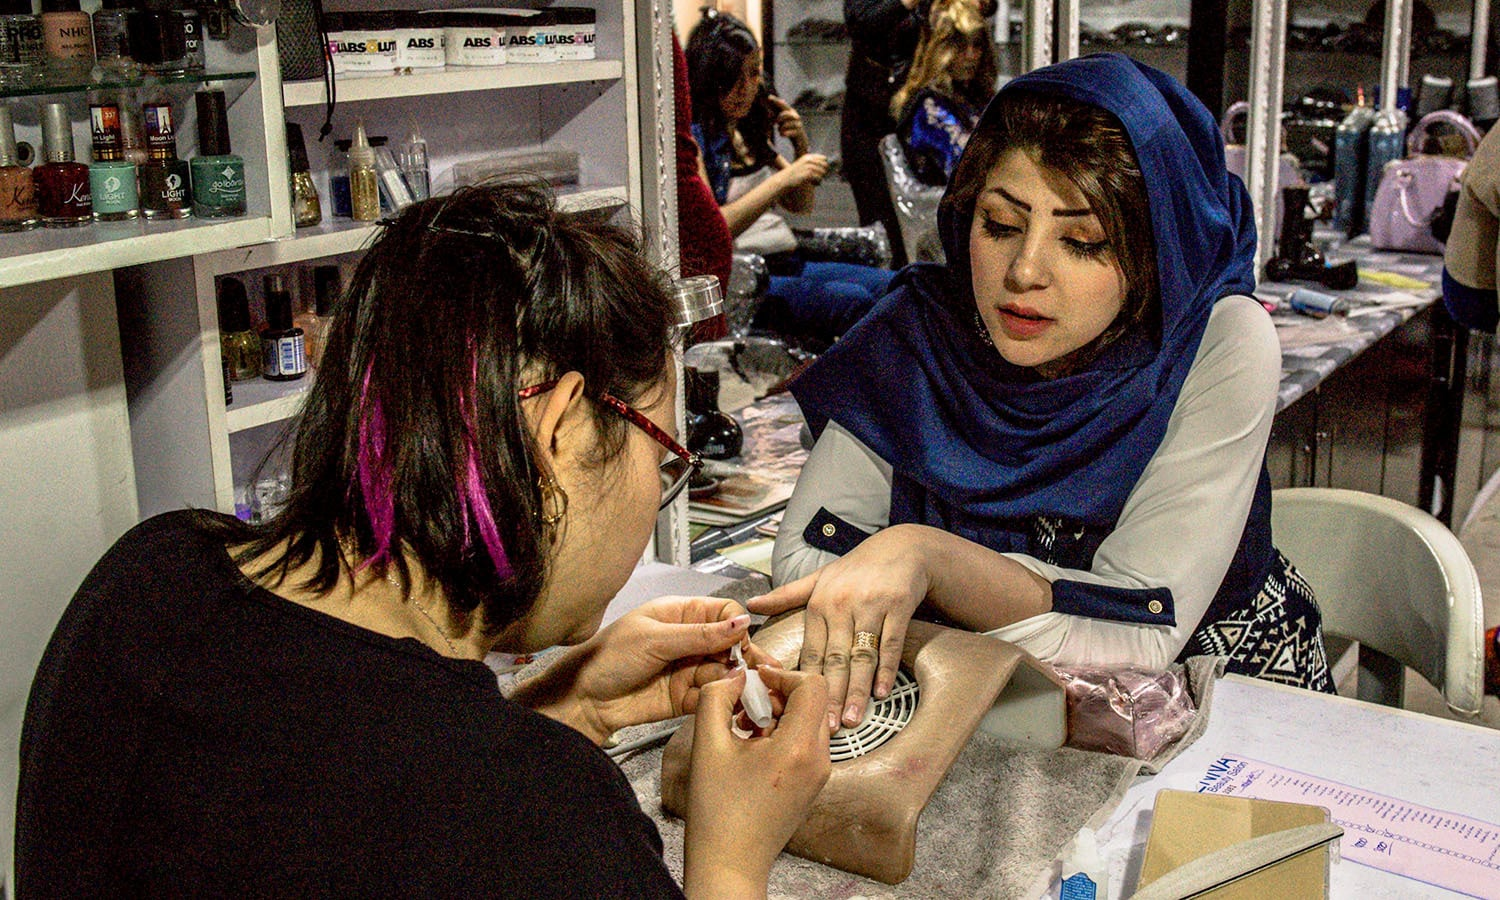 Afghan beautician Sadaf, 17, and who has worked at the beauty parlour for one year, applies false nails at the start of a manicure for a wedding party guest at a beauty parlour in Kabul. ─AFP